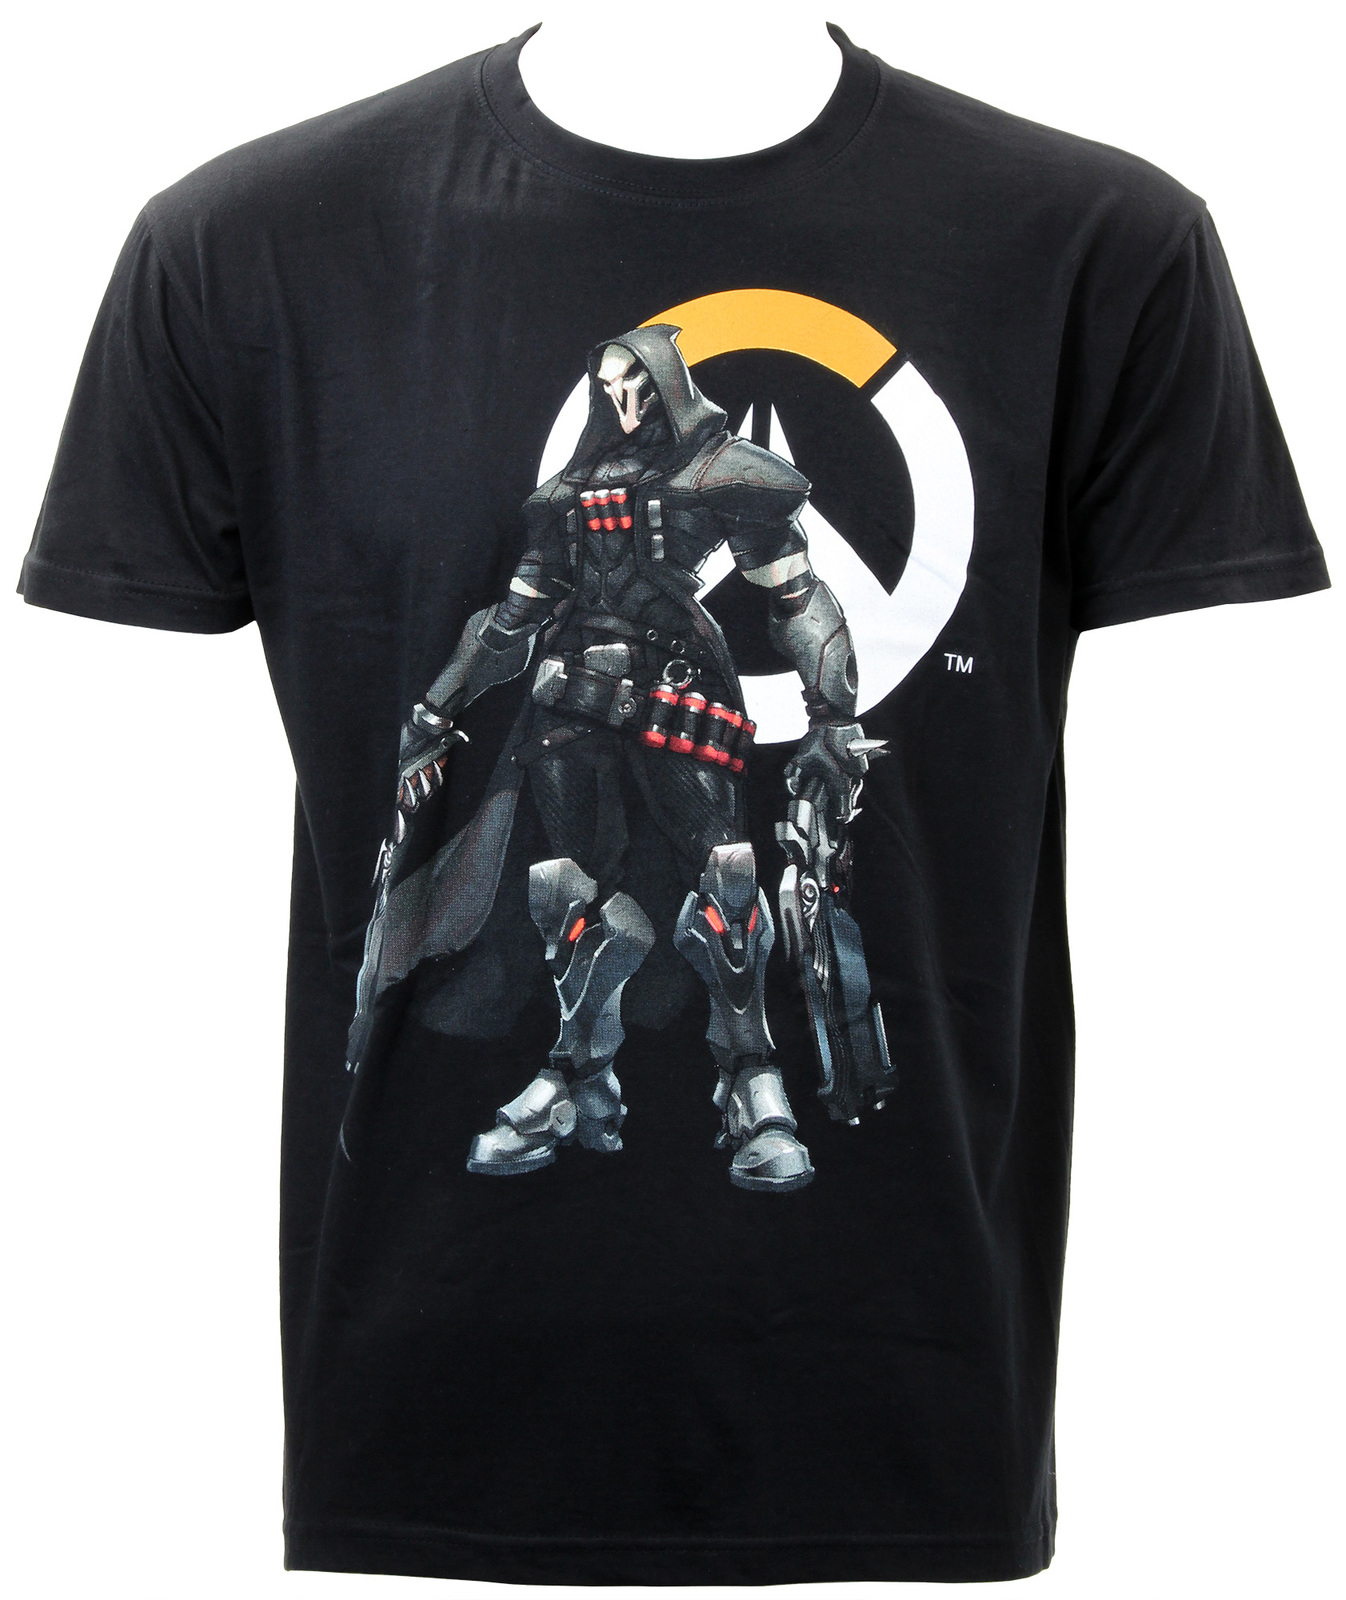 Overwatch Reaper T-Shirt (Small) image